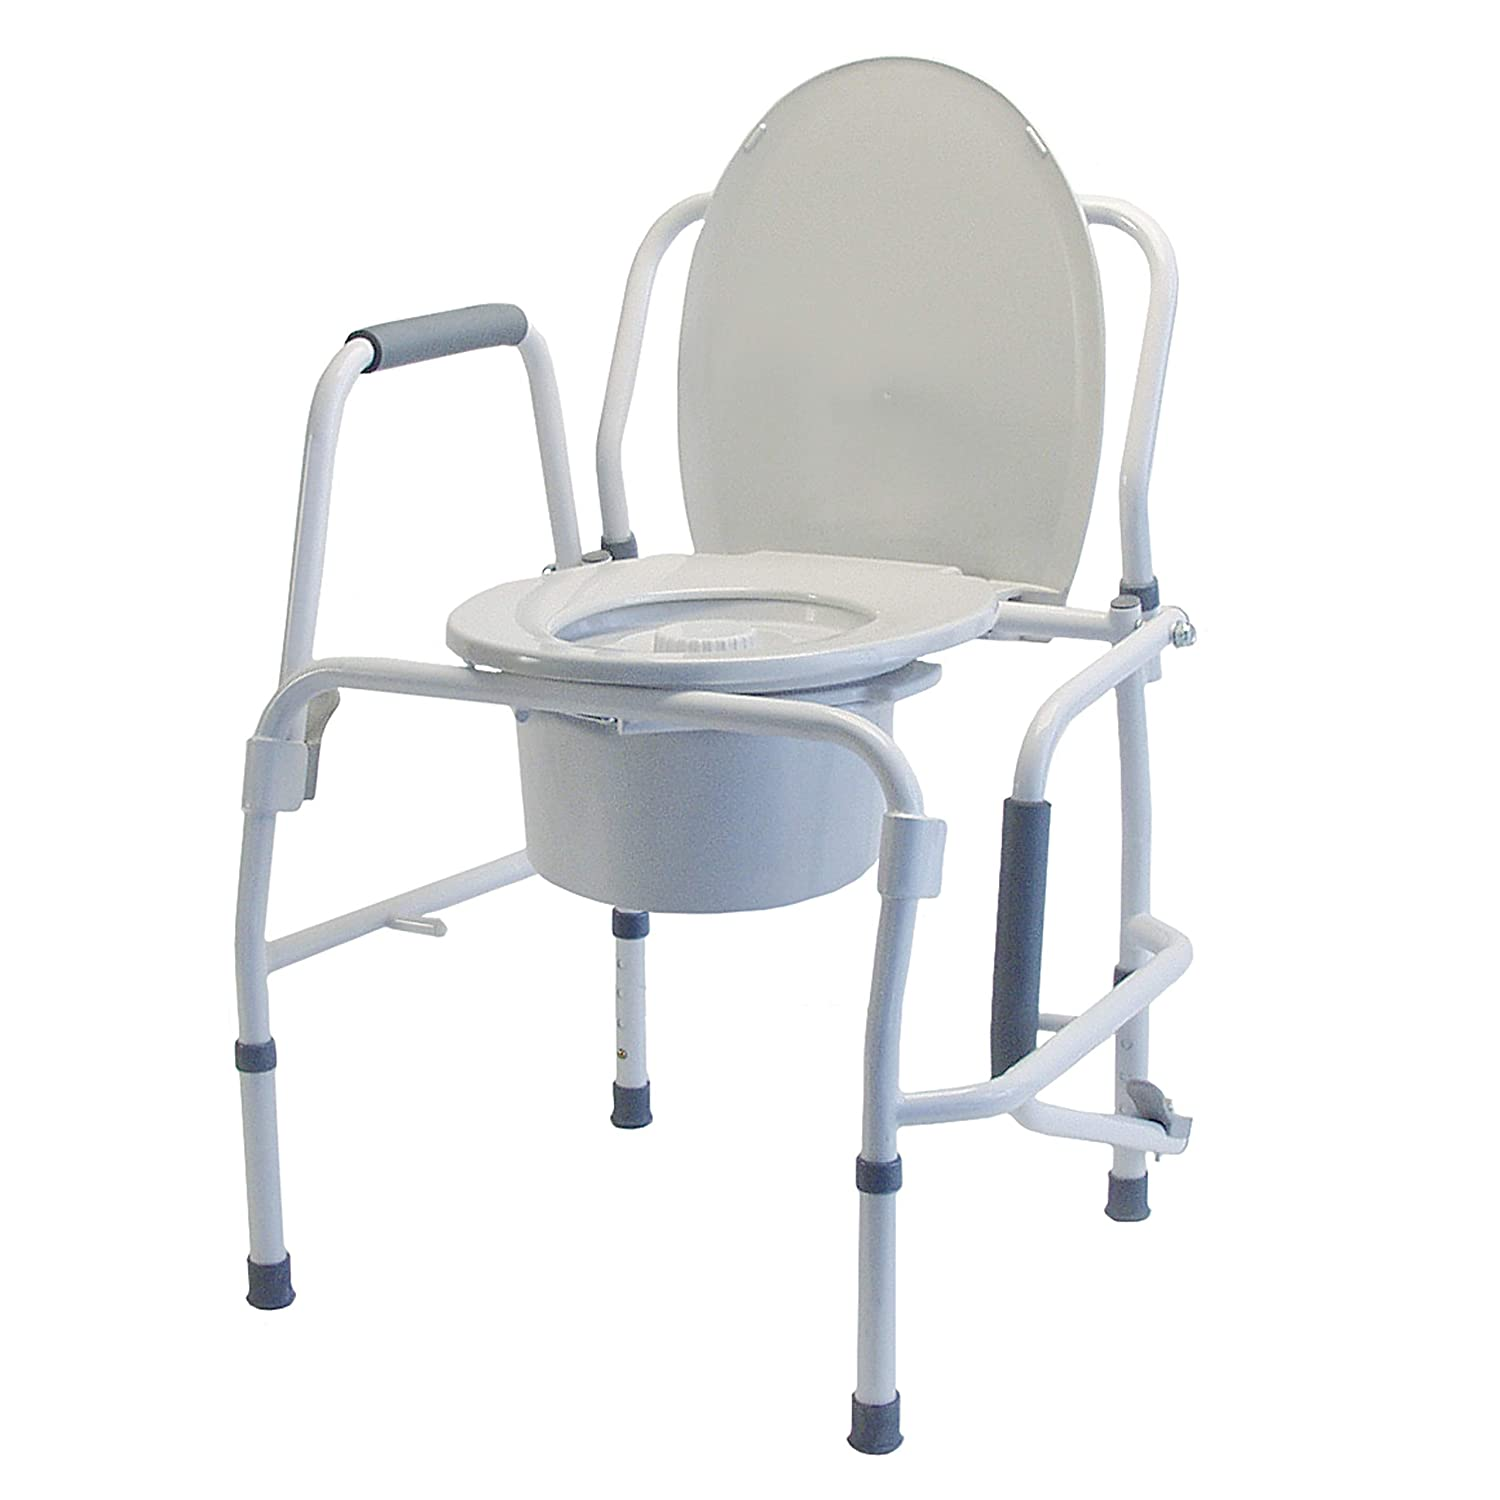 Lumex 3-in-1 Bedside Commode, Raised Toilet Seat, and Toilet Safety Rail, 300 lb. Weight Capacity, 6433A: Industrial & Scientific